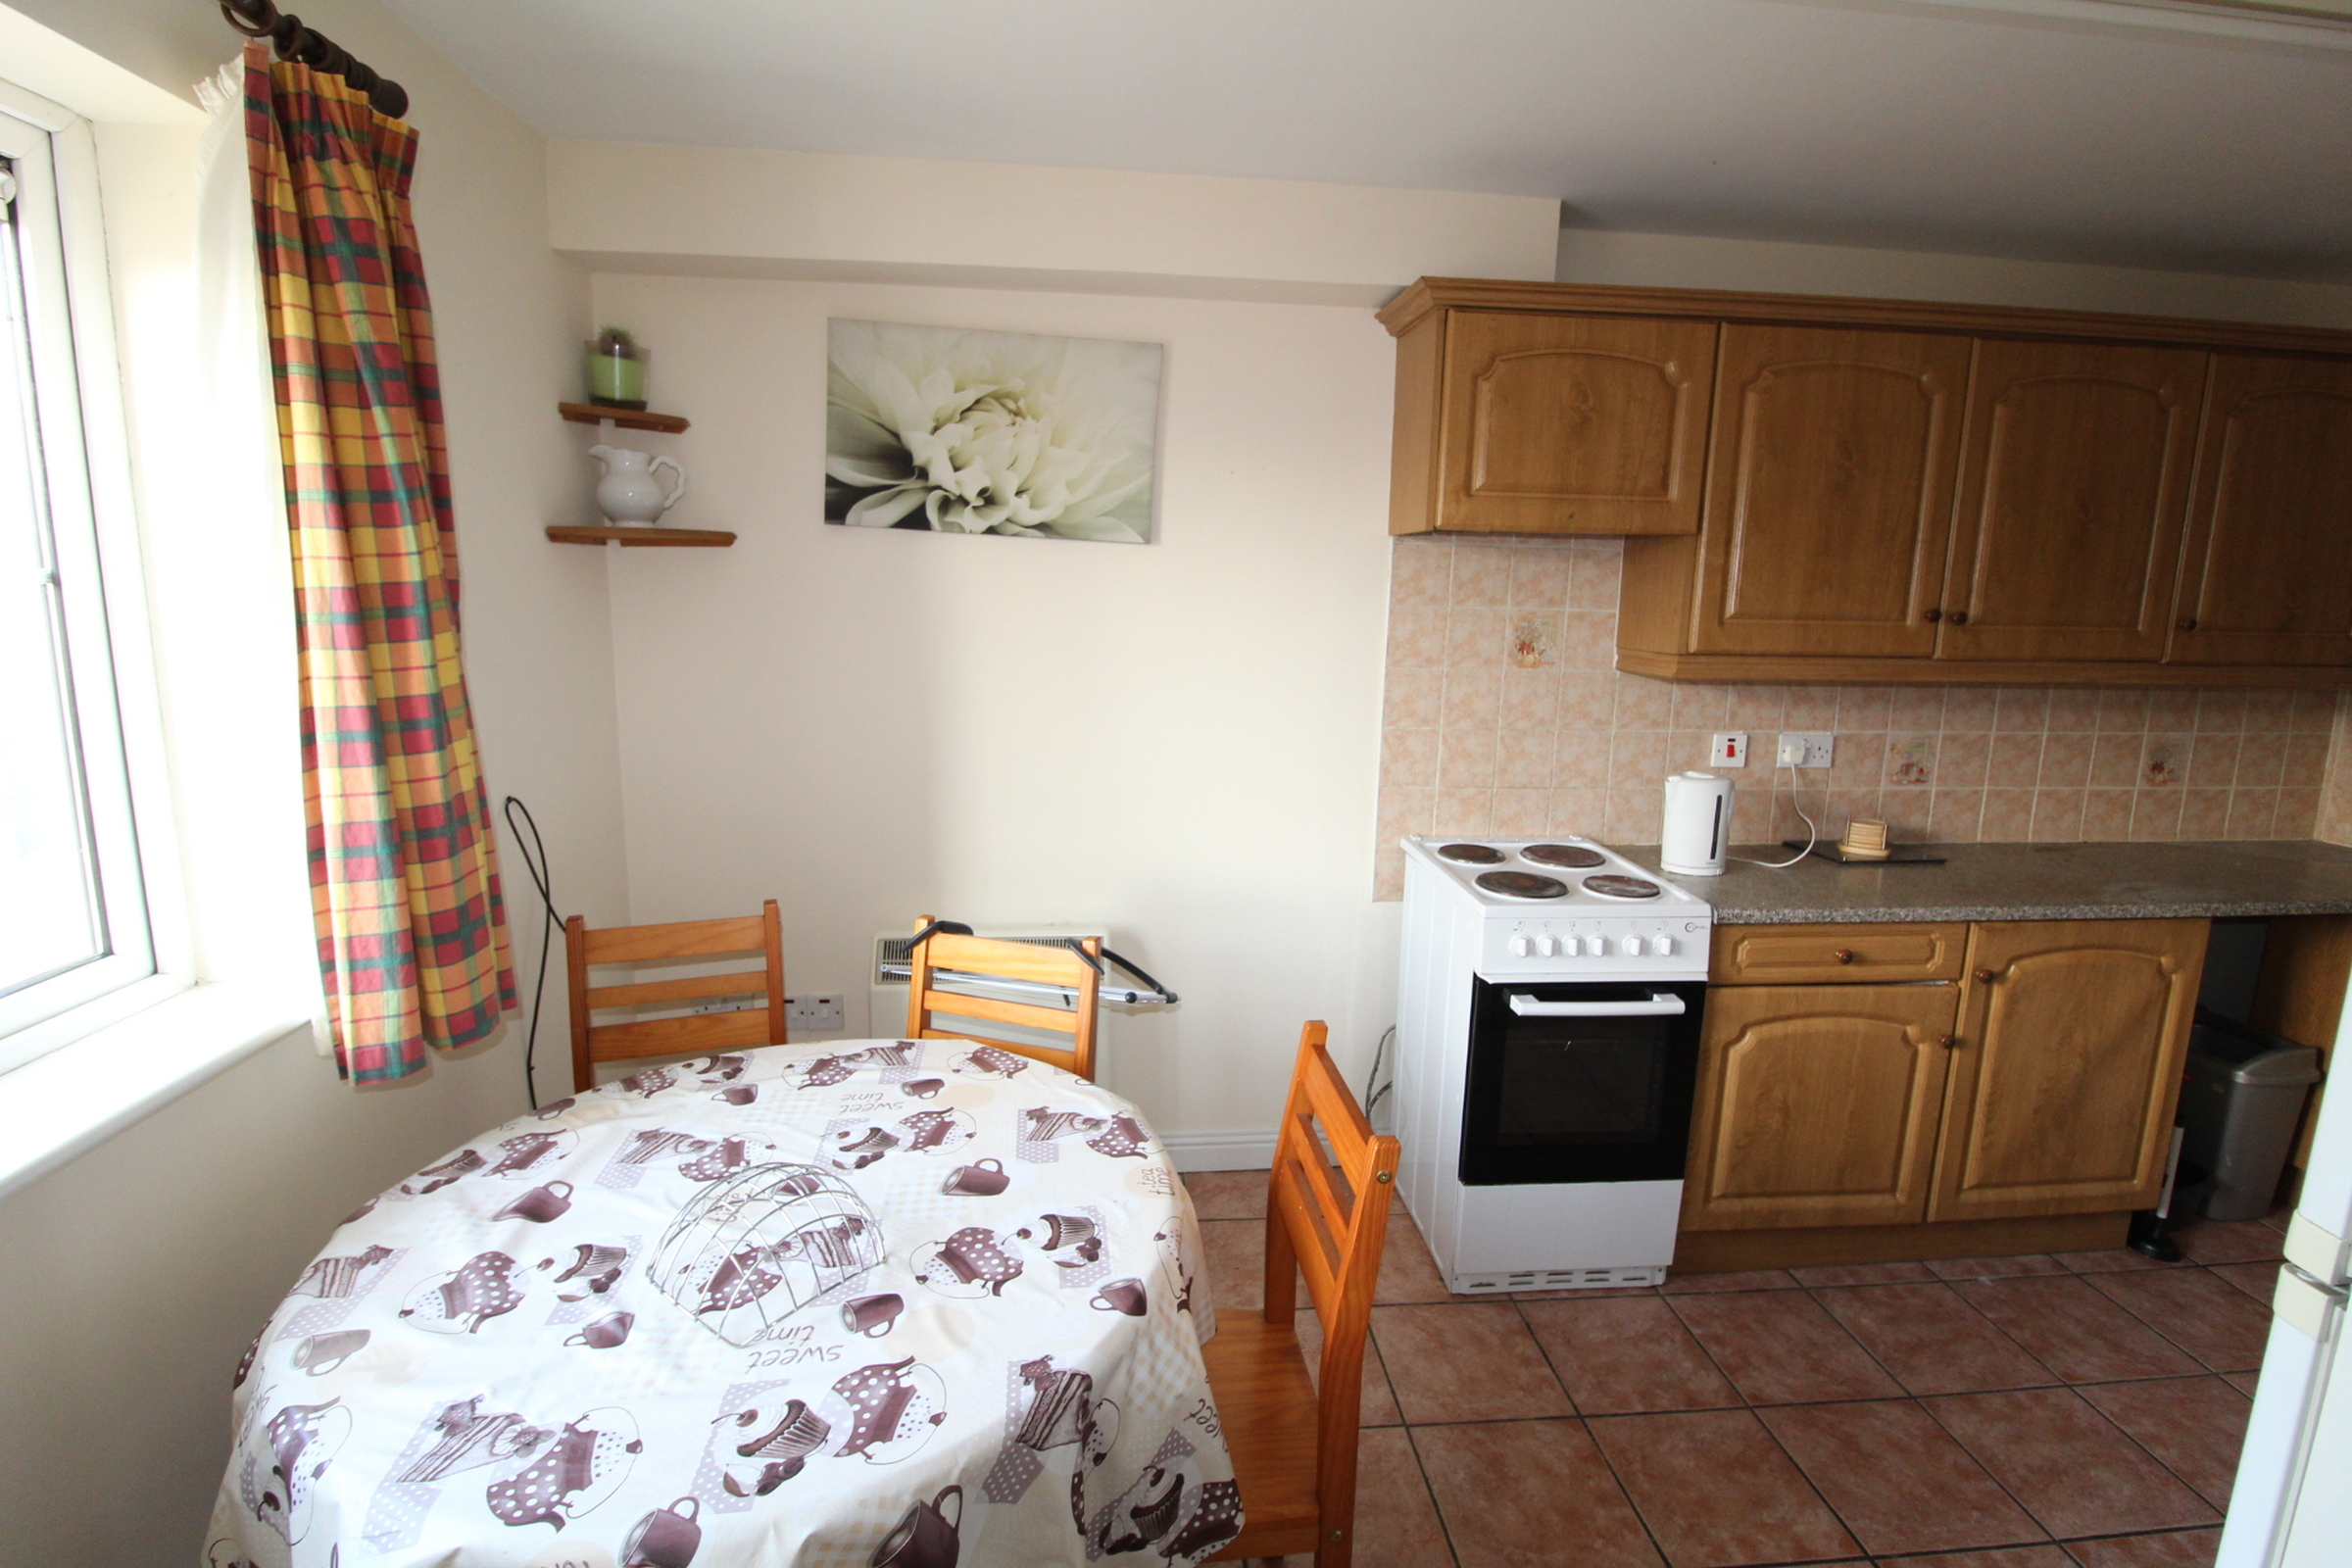 E16, Granary Court, Mallow, Co. Cork